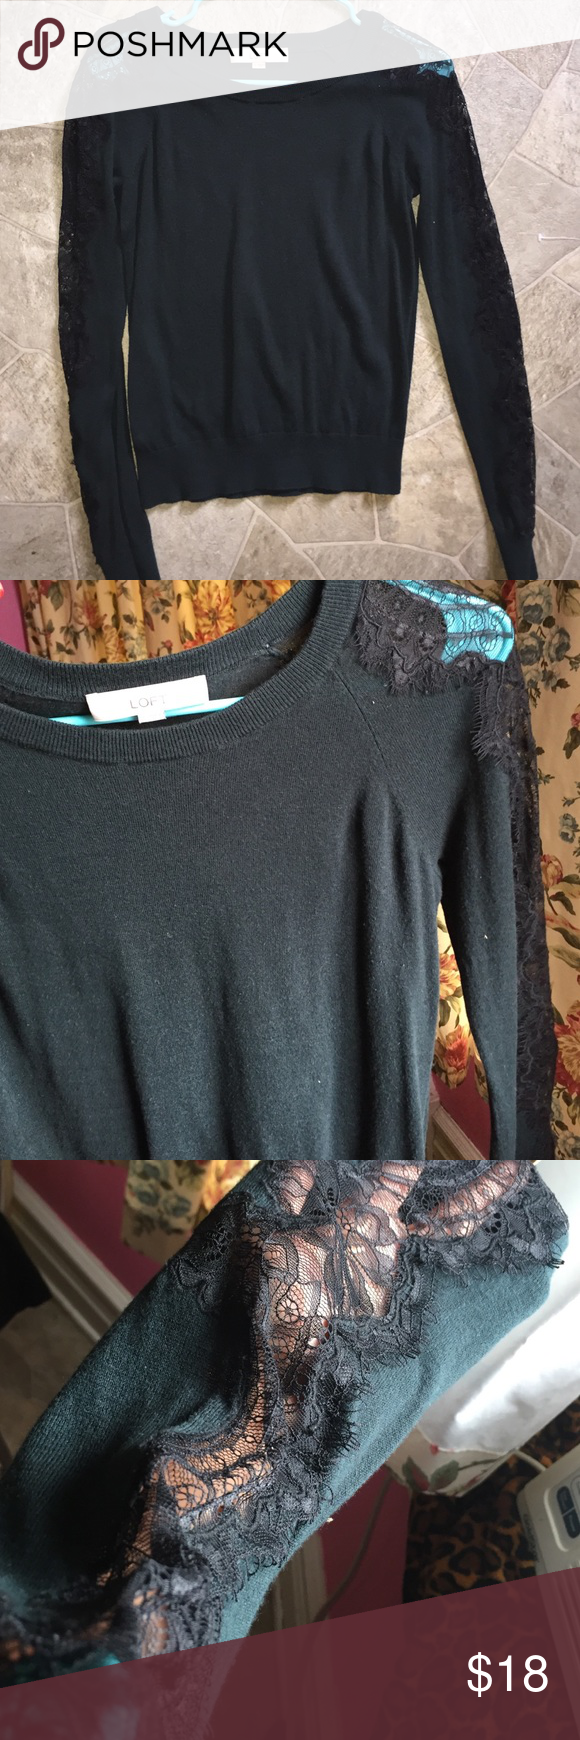 Green sweater Worn twice a washed size small. Shoulder to wrist has really pretty design. No rips or stains. LOFT Sweaters Crew & Scoop Necks